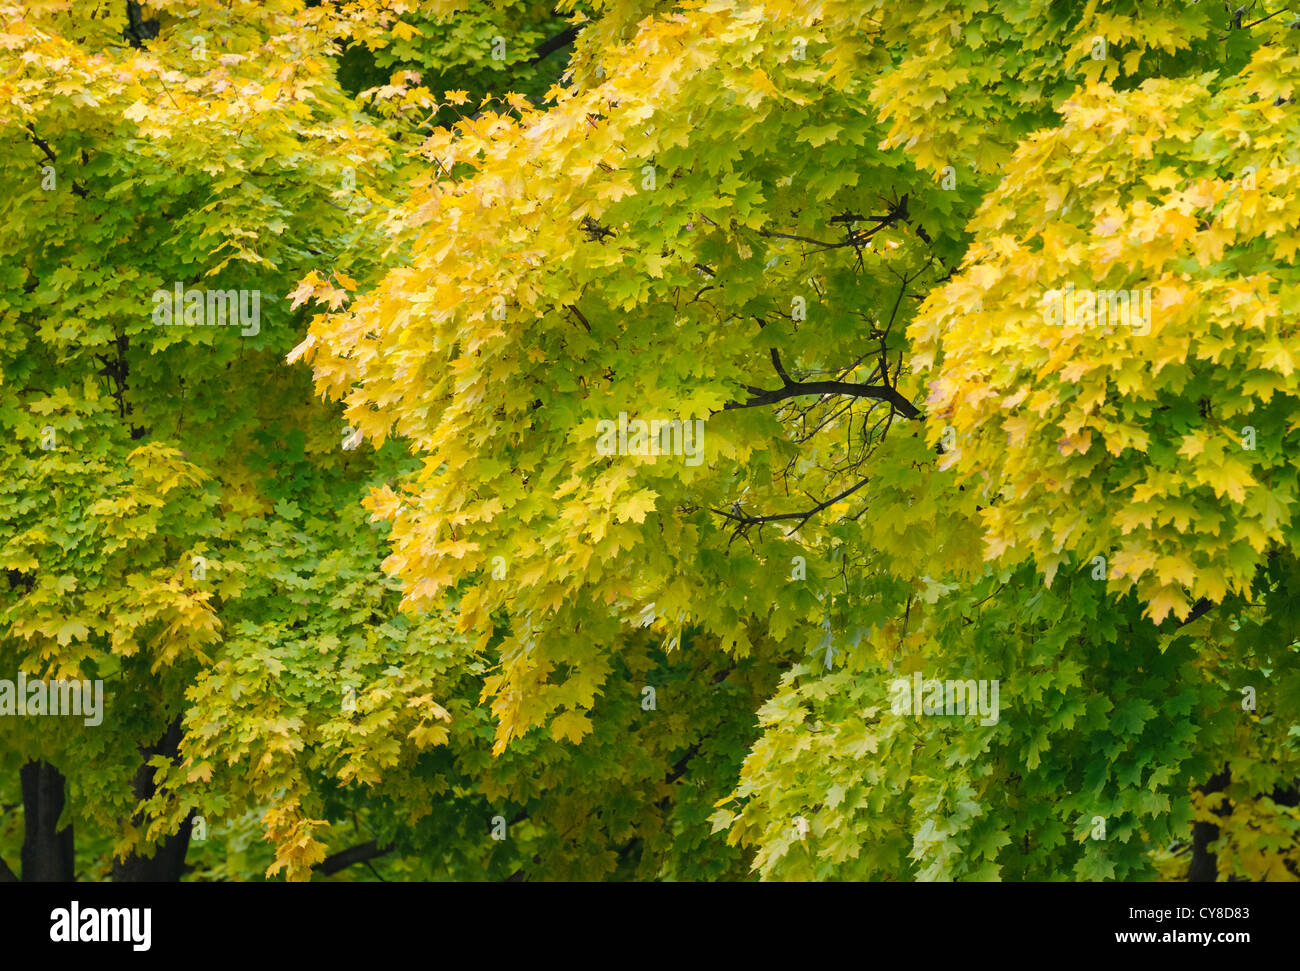 Maple trees, with yellow and green autumn leaves, beginning to turn ...